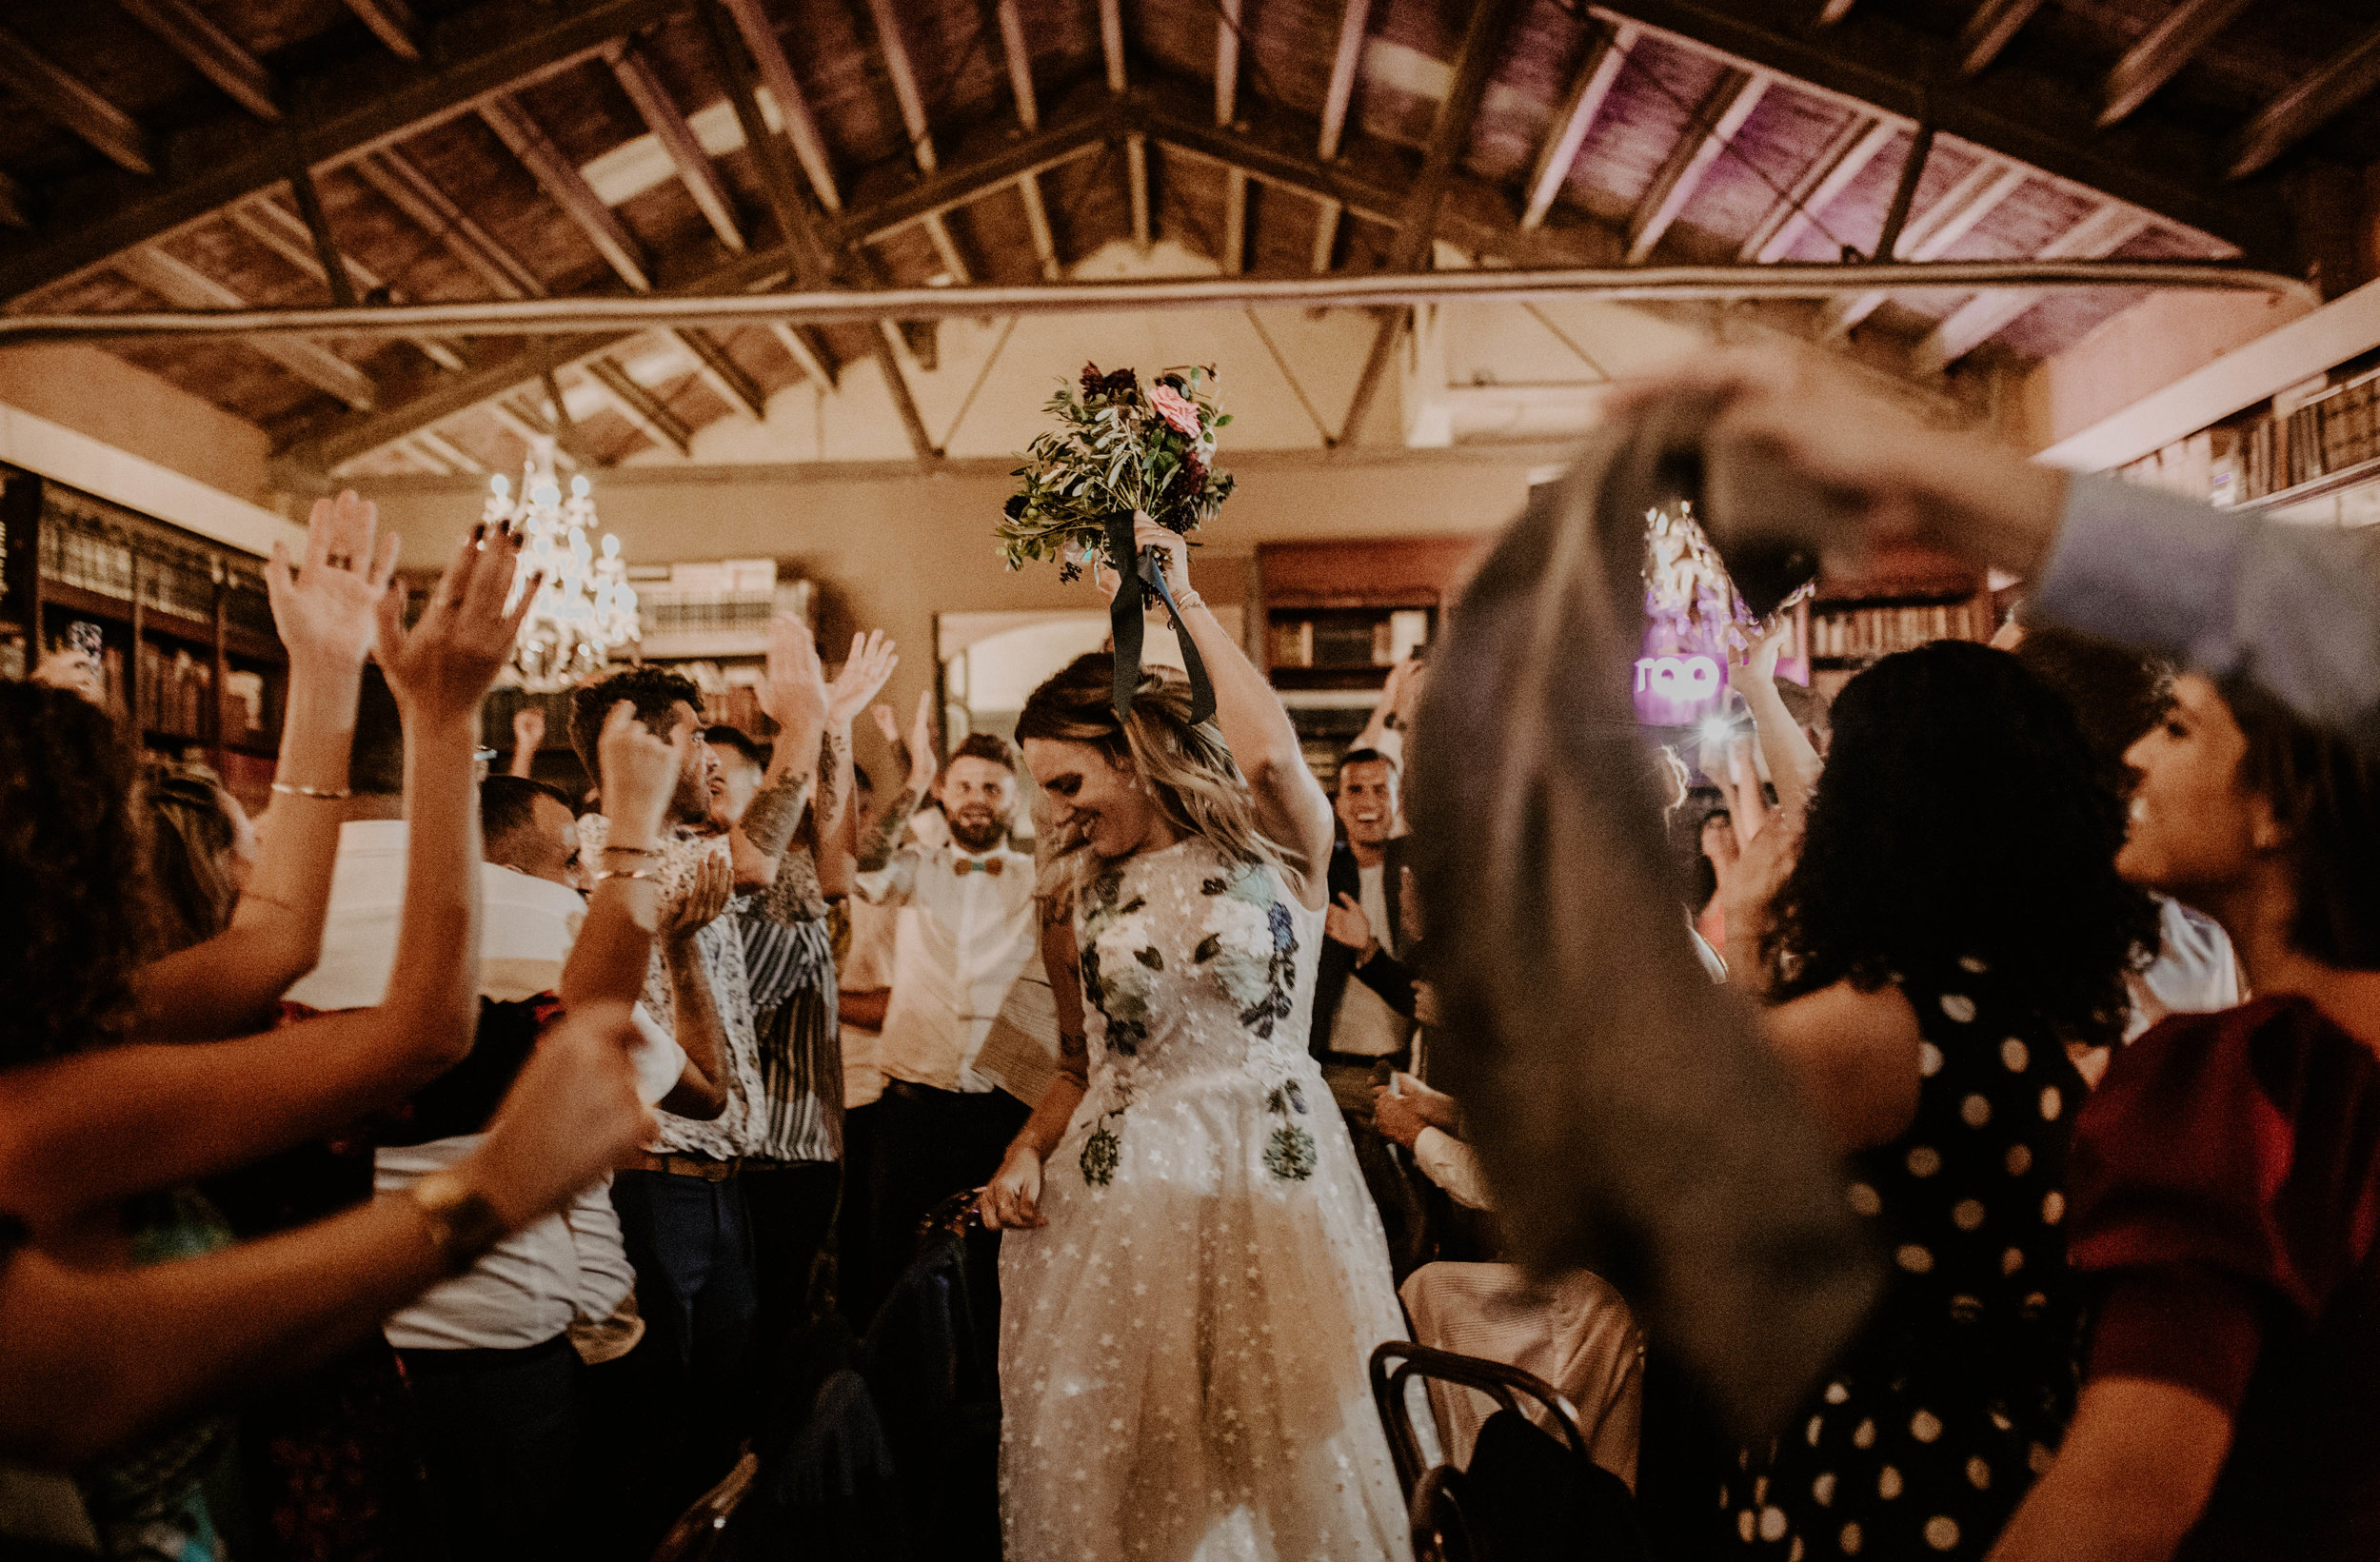 thenortherngirlphotography_bodasindustriales_bodasdiferentes_weddingphotographer_spanishphotographer_spanisgweddingphotographer_happyendings_mercantic_elsiglomercantic_antichrist_love_neon_weddingtattoo_CYNTHIAMANOLO-716.jpg